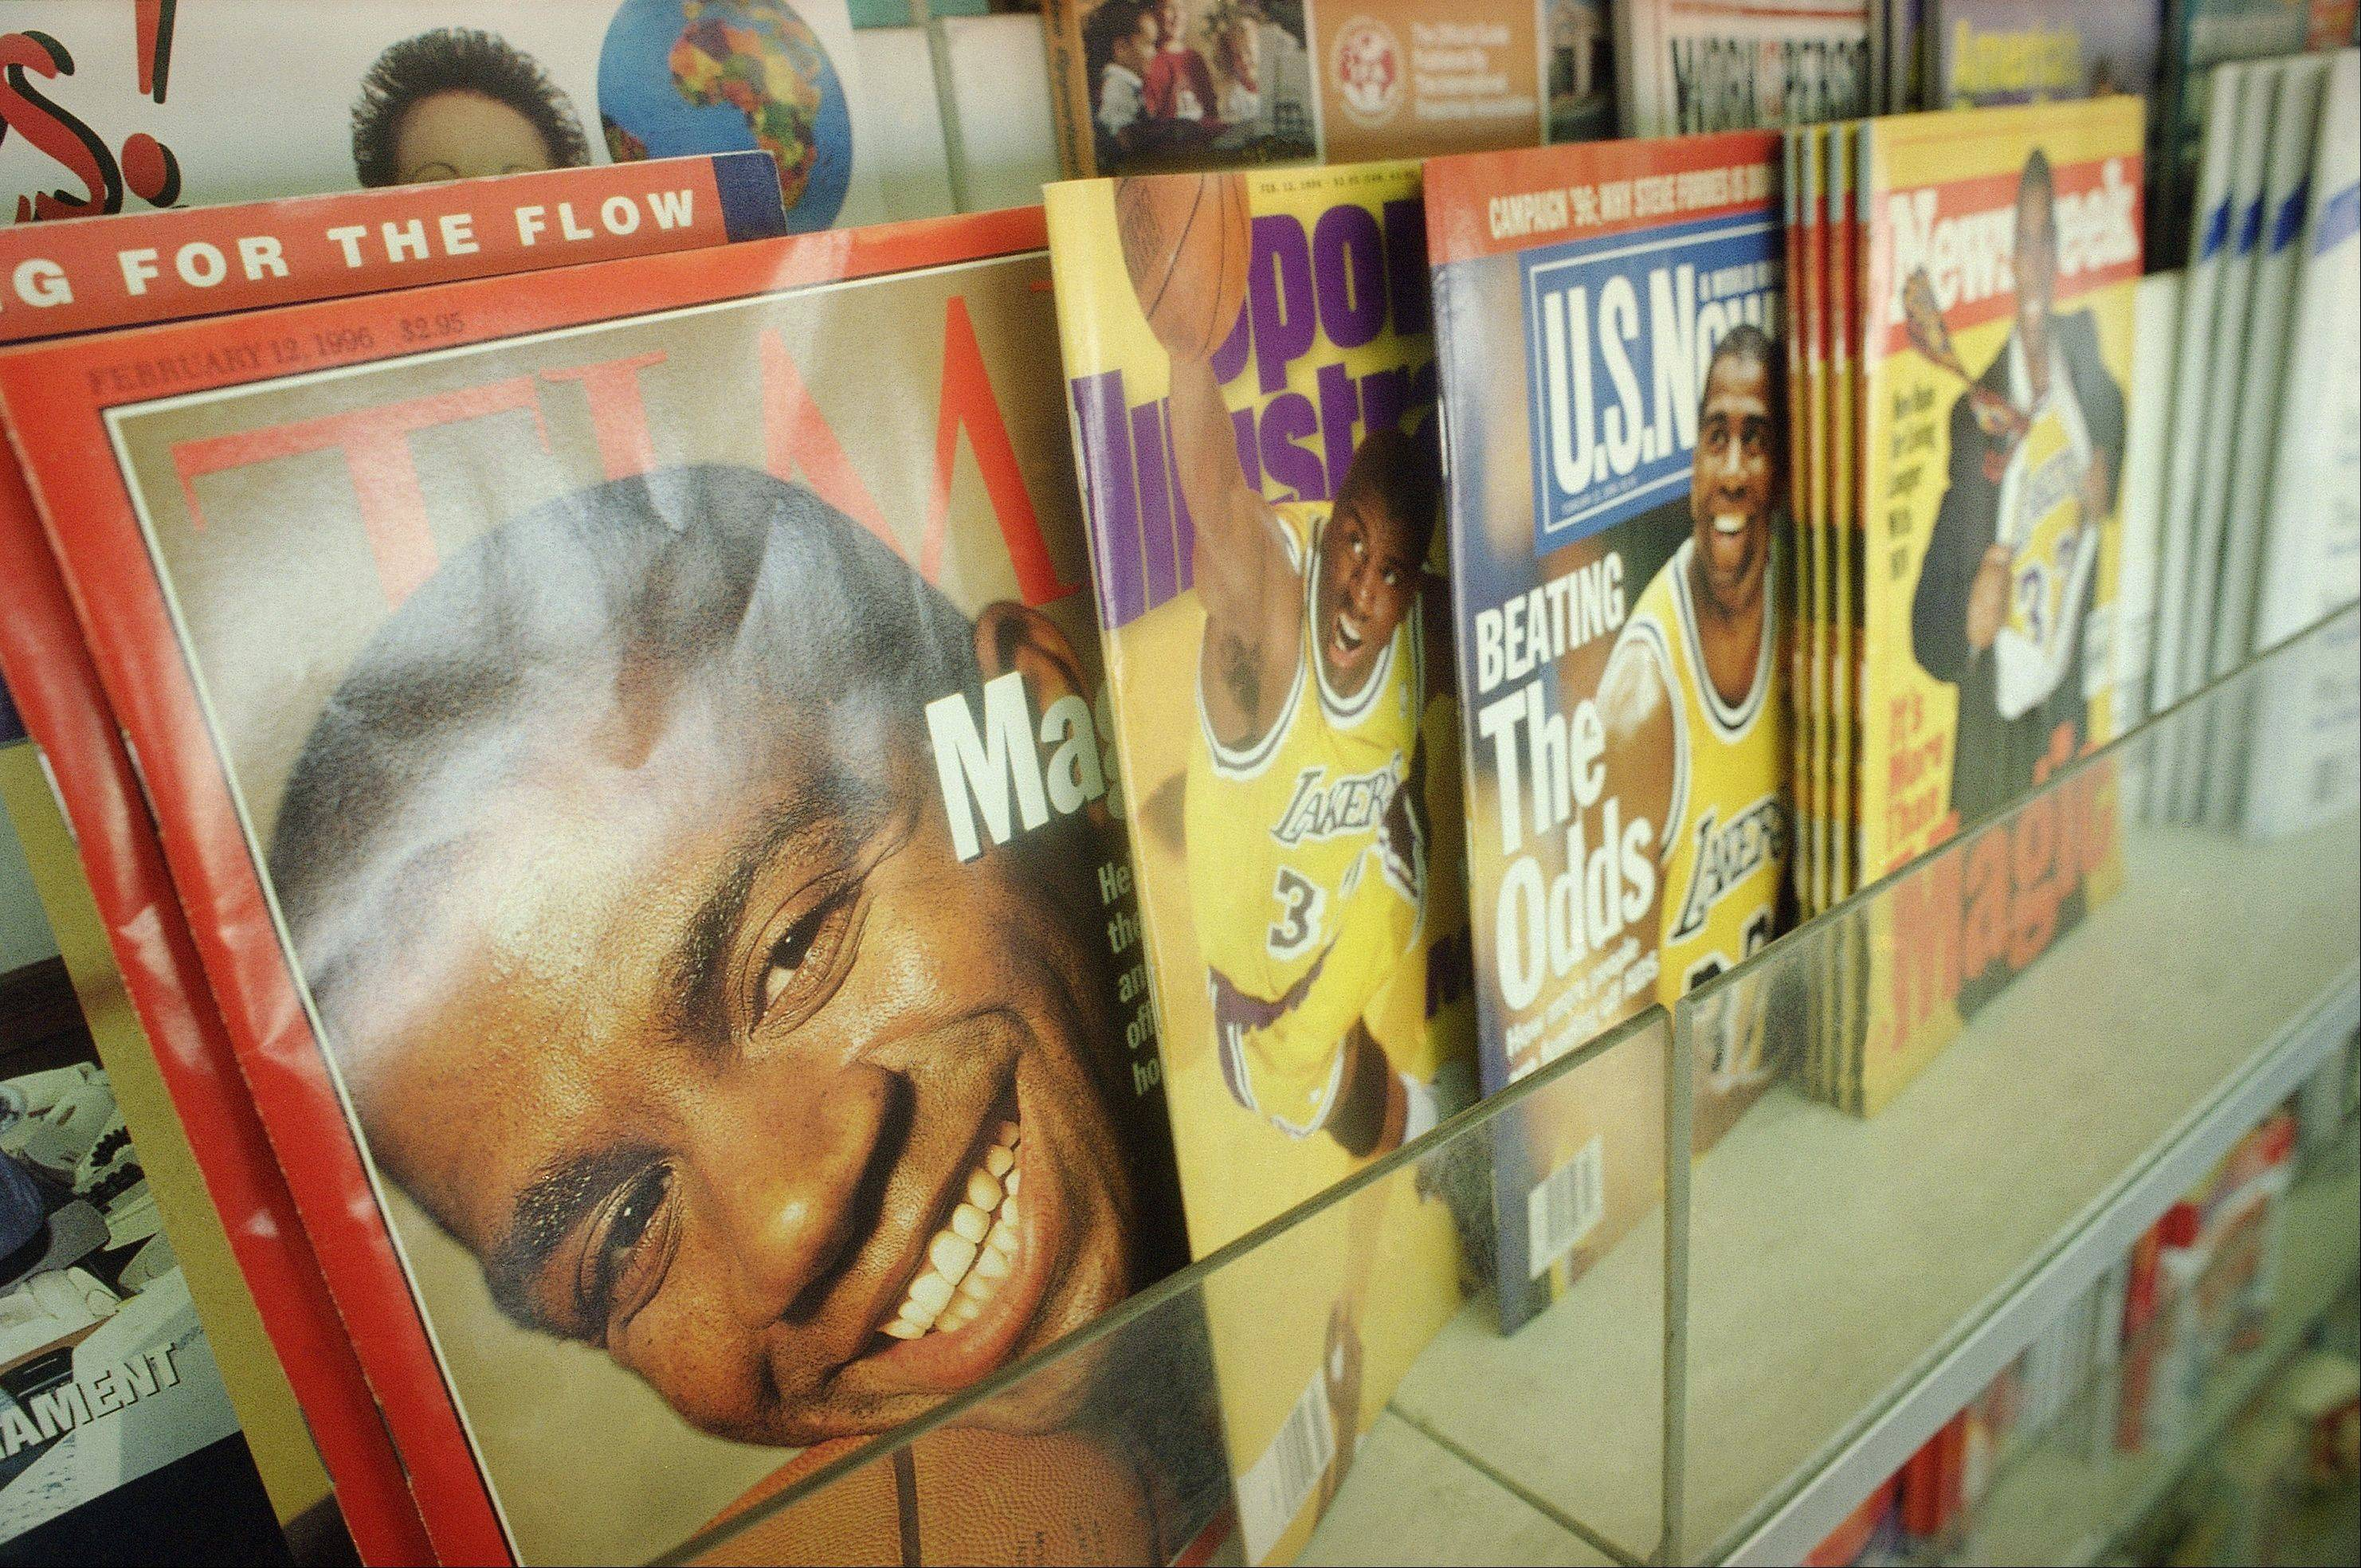 FILE -- In this 1996 photo, Los Angeles Lakers basketball player Magic Johnson adorns the cover of four weekly magazines, from left, Time, Sports Illustrated, U.S. News & World Report and Newsweek in Los Angeles. Newsweek announced Thursday, Oct. 18, 2012 that it will end its print publication after 80 years and shift to an all-digital format in early 2013.